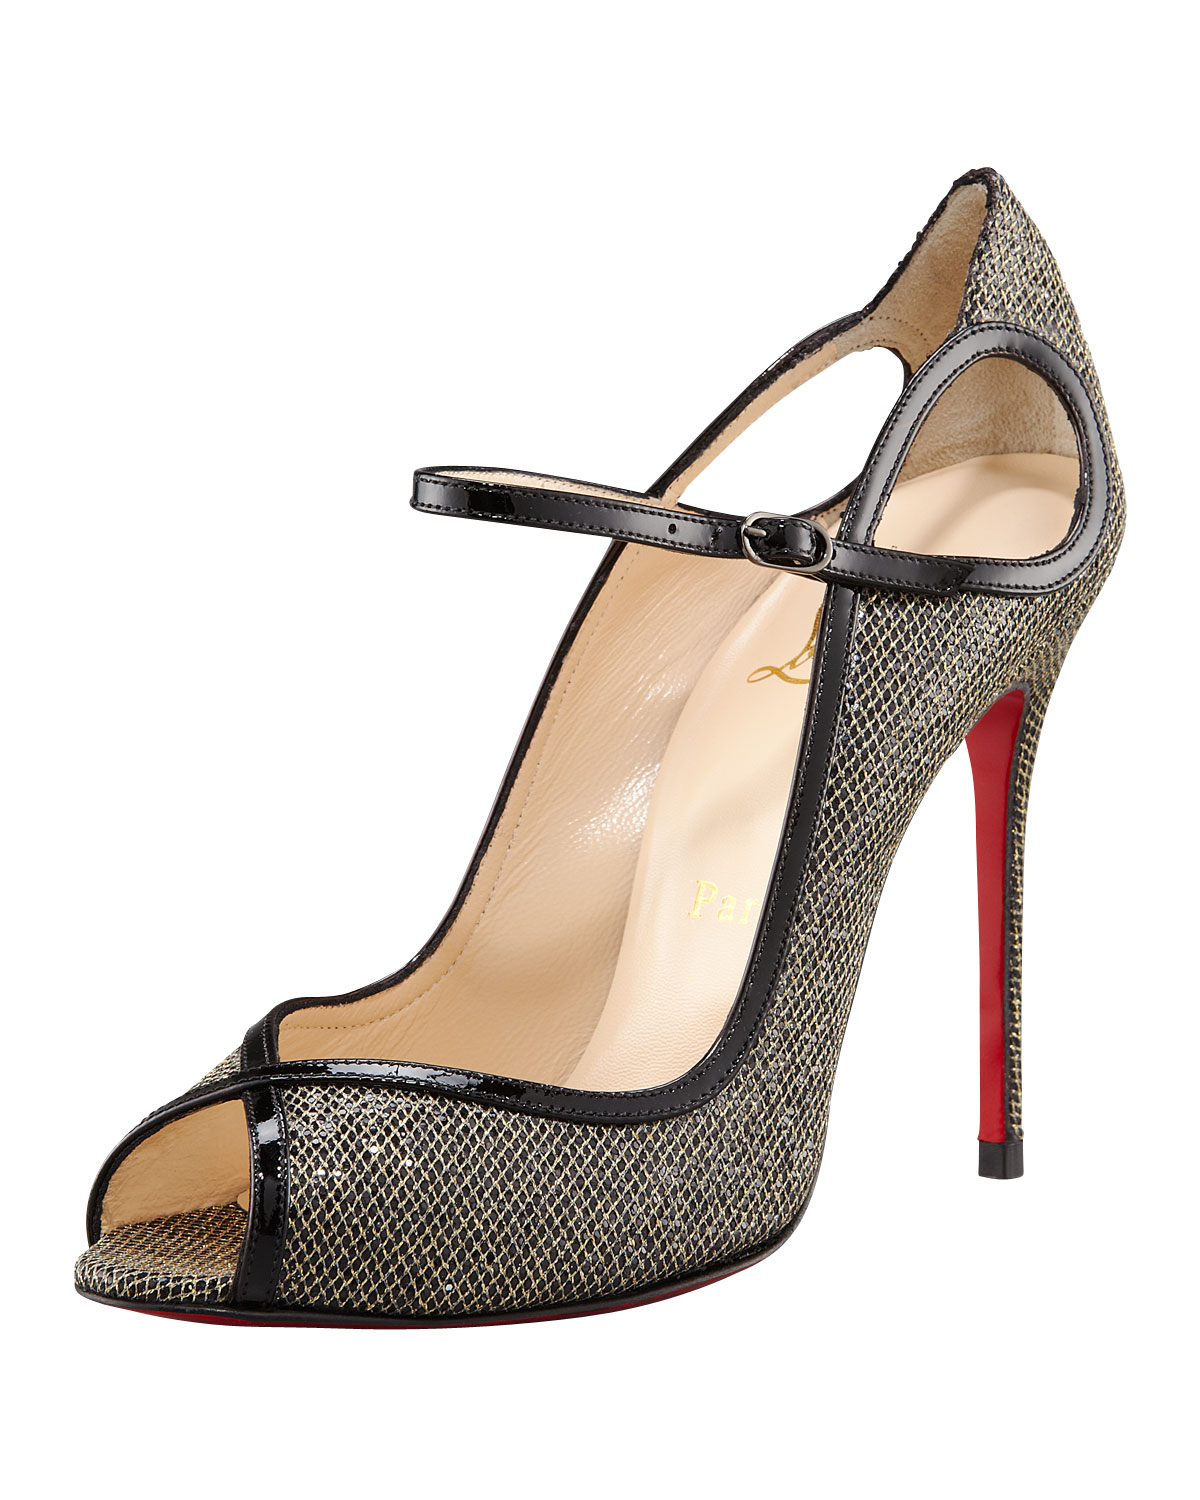 ... christian louboutin bikee bike 100mm leather sandals gold; gallery ...